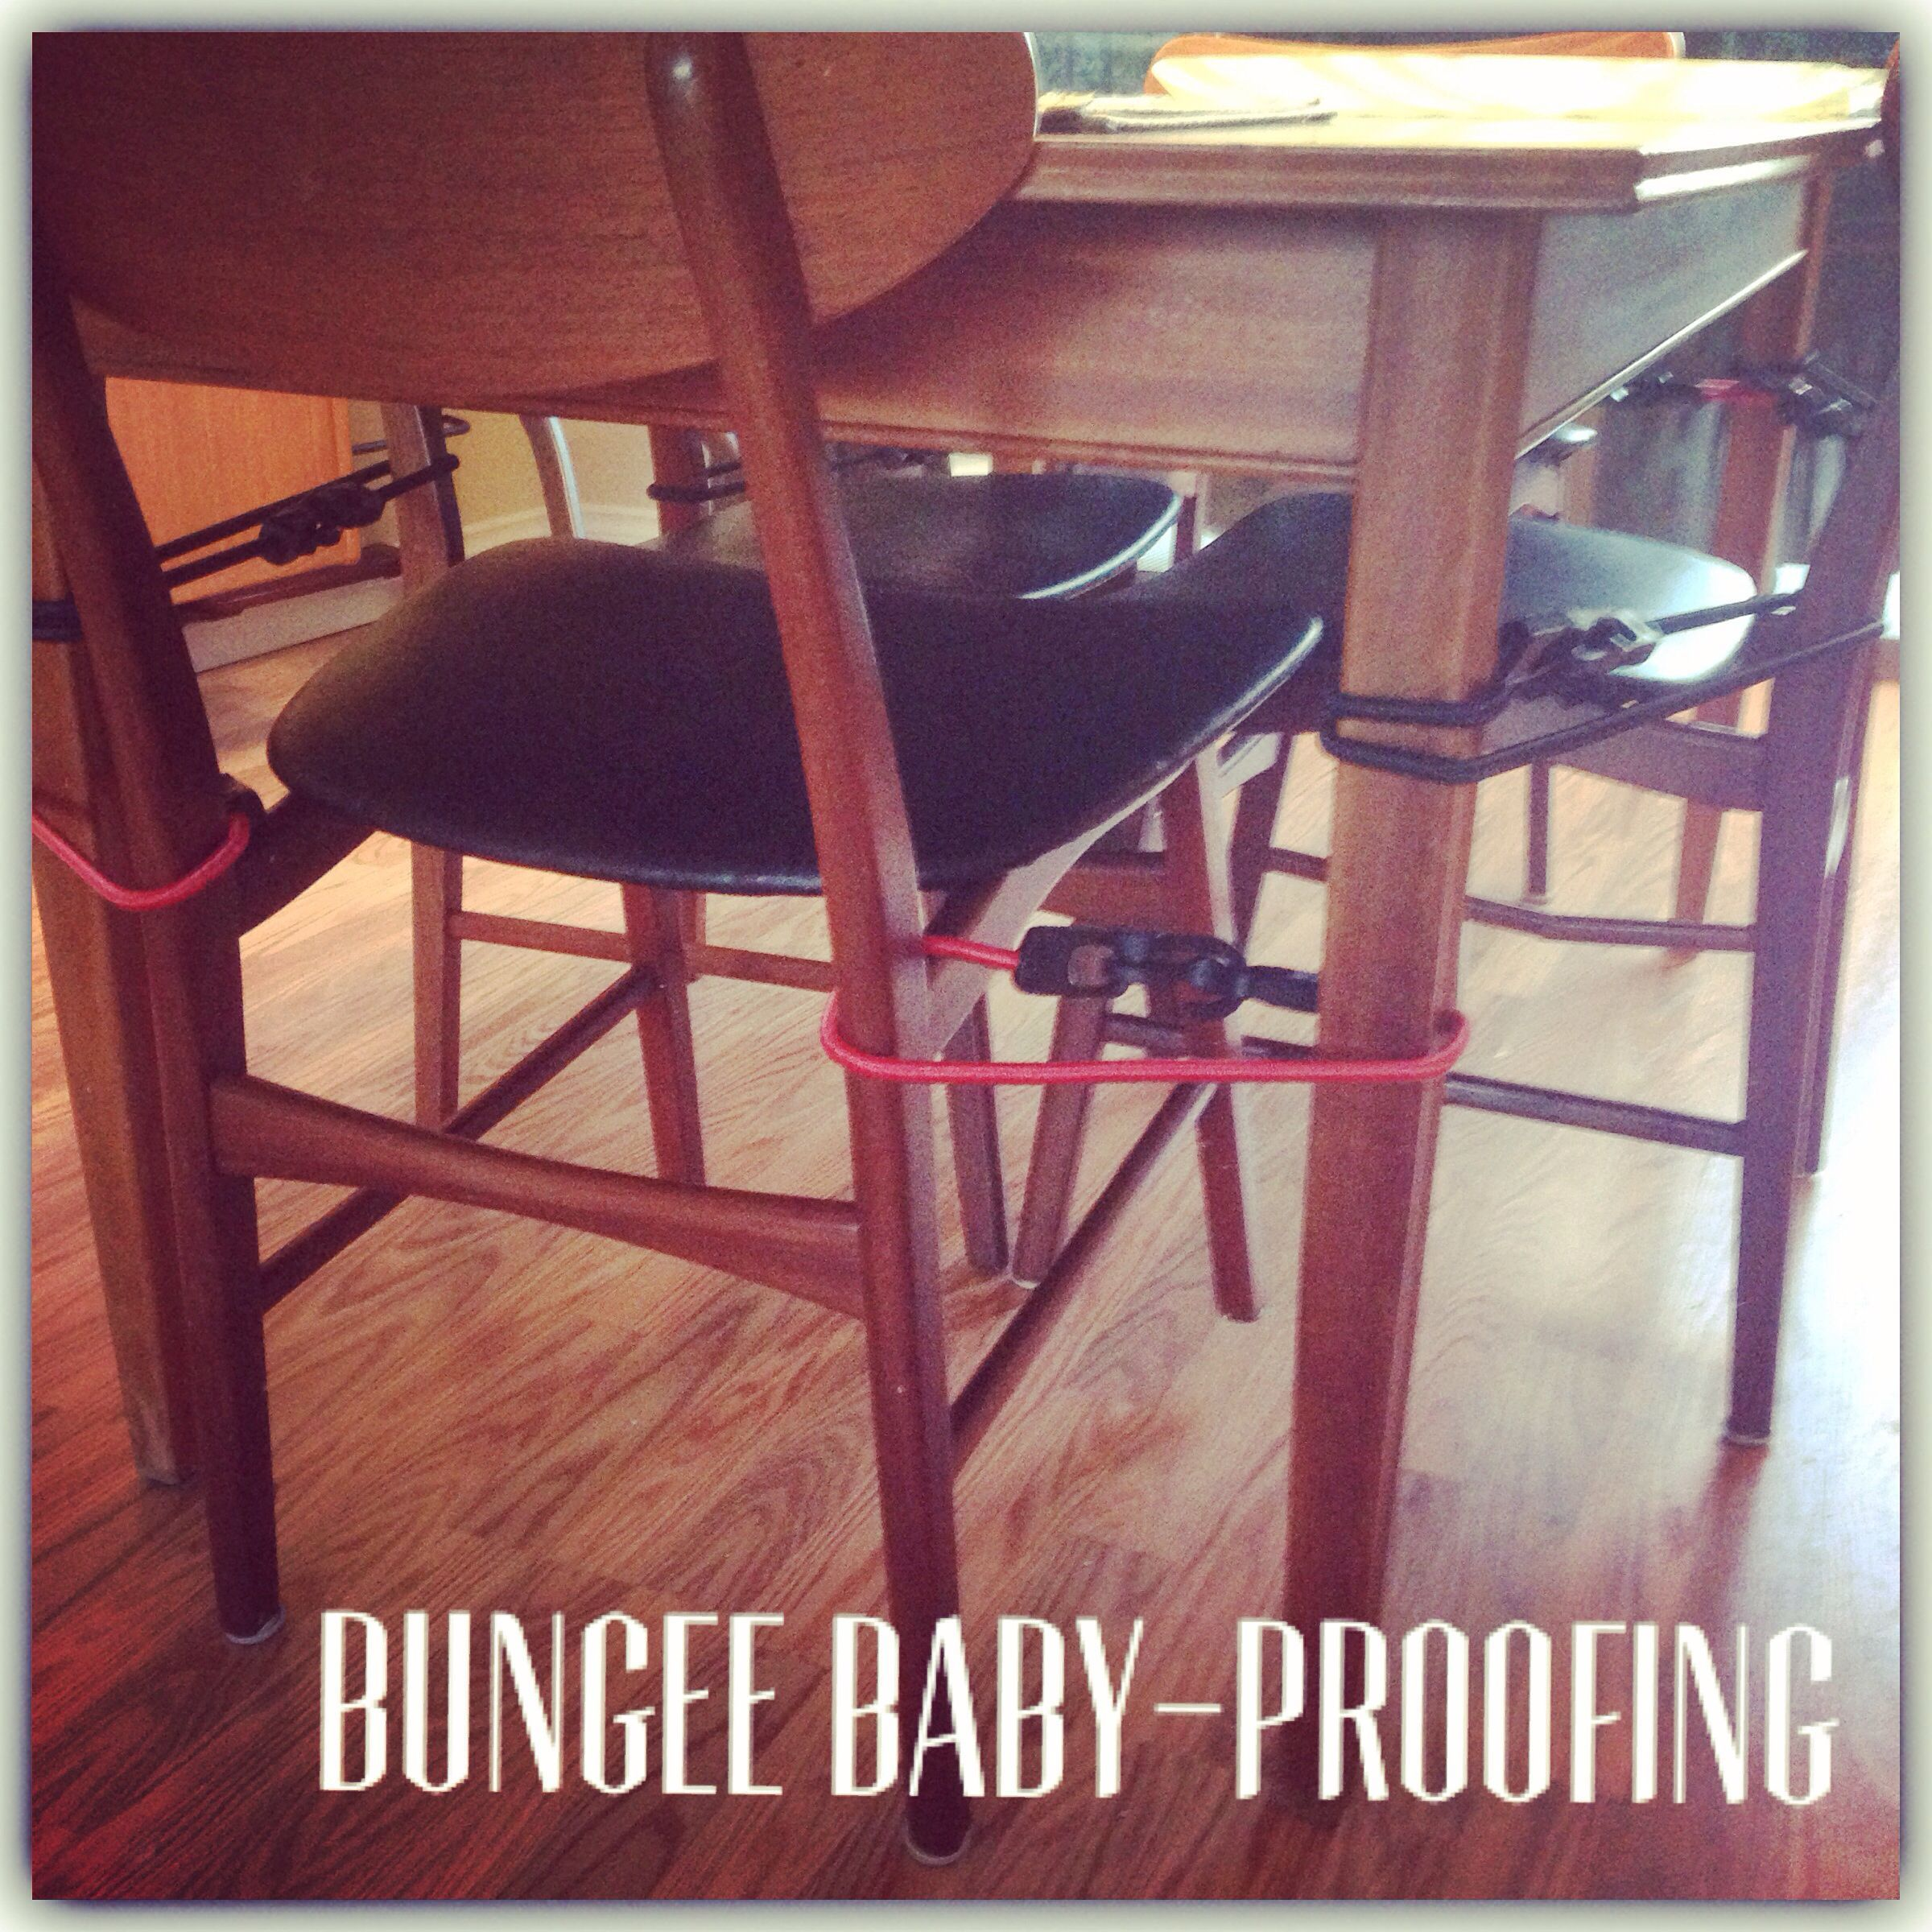 Bungee Baby Proofing Tired Of Your Toddler Climbing Up On The Dining Room Table Use Bungee Cords To Baby Proo Baby Proofing Baby Proof House Toddler Proofing